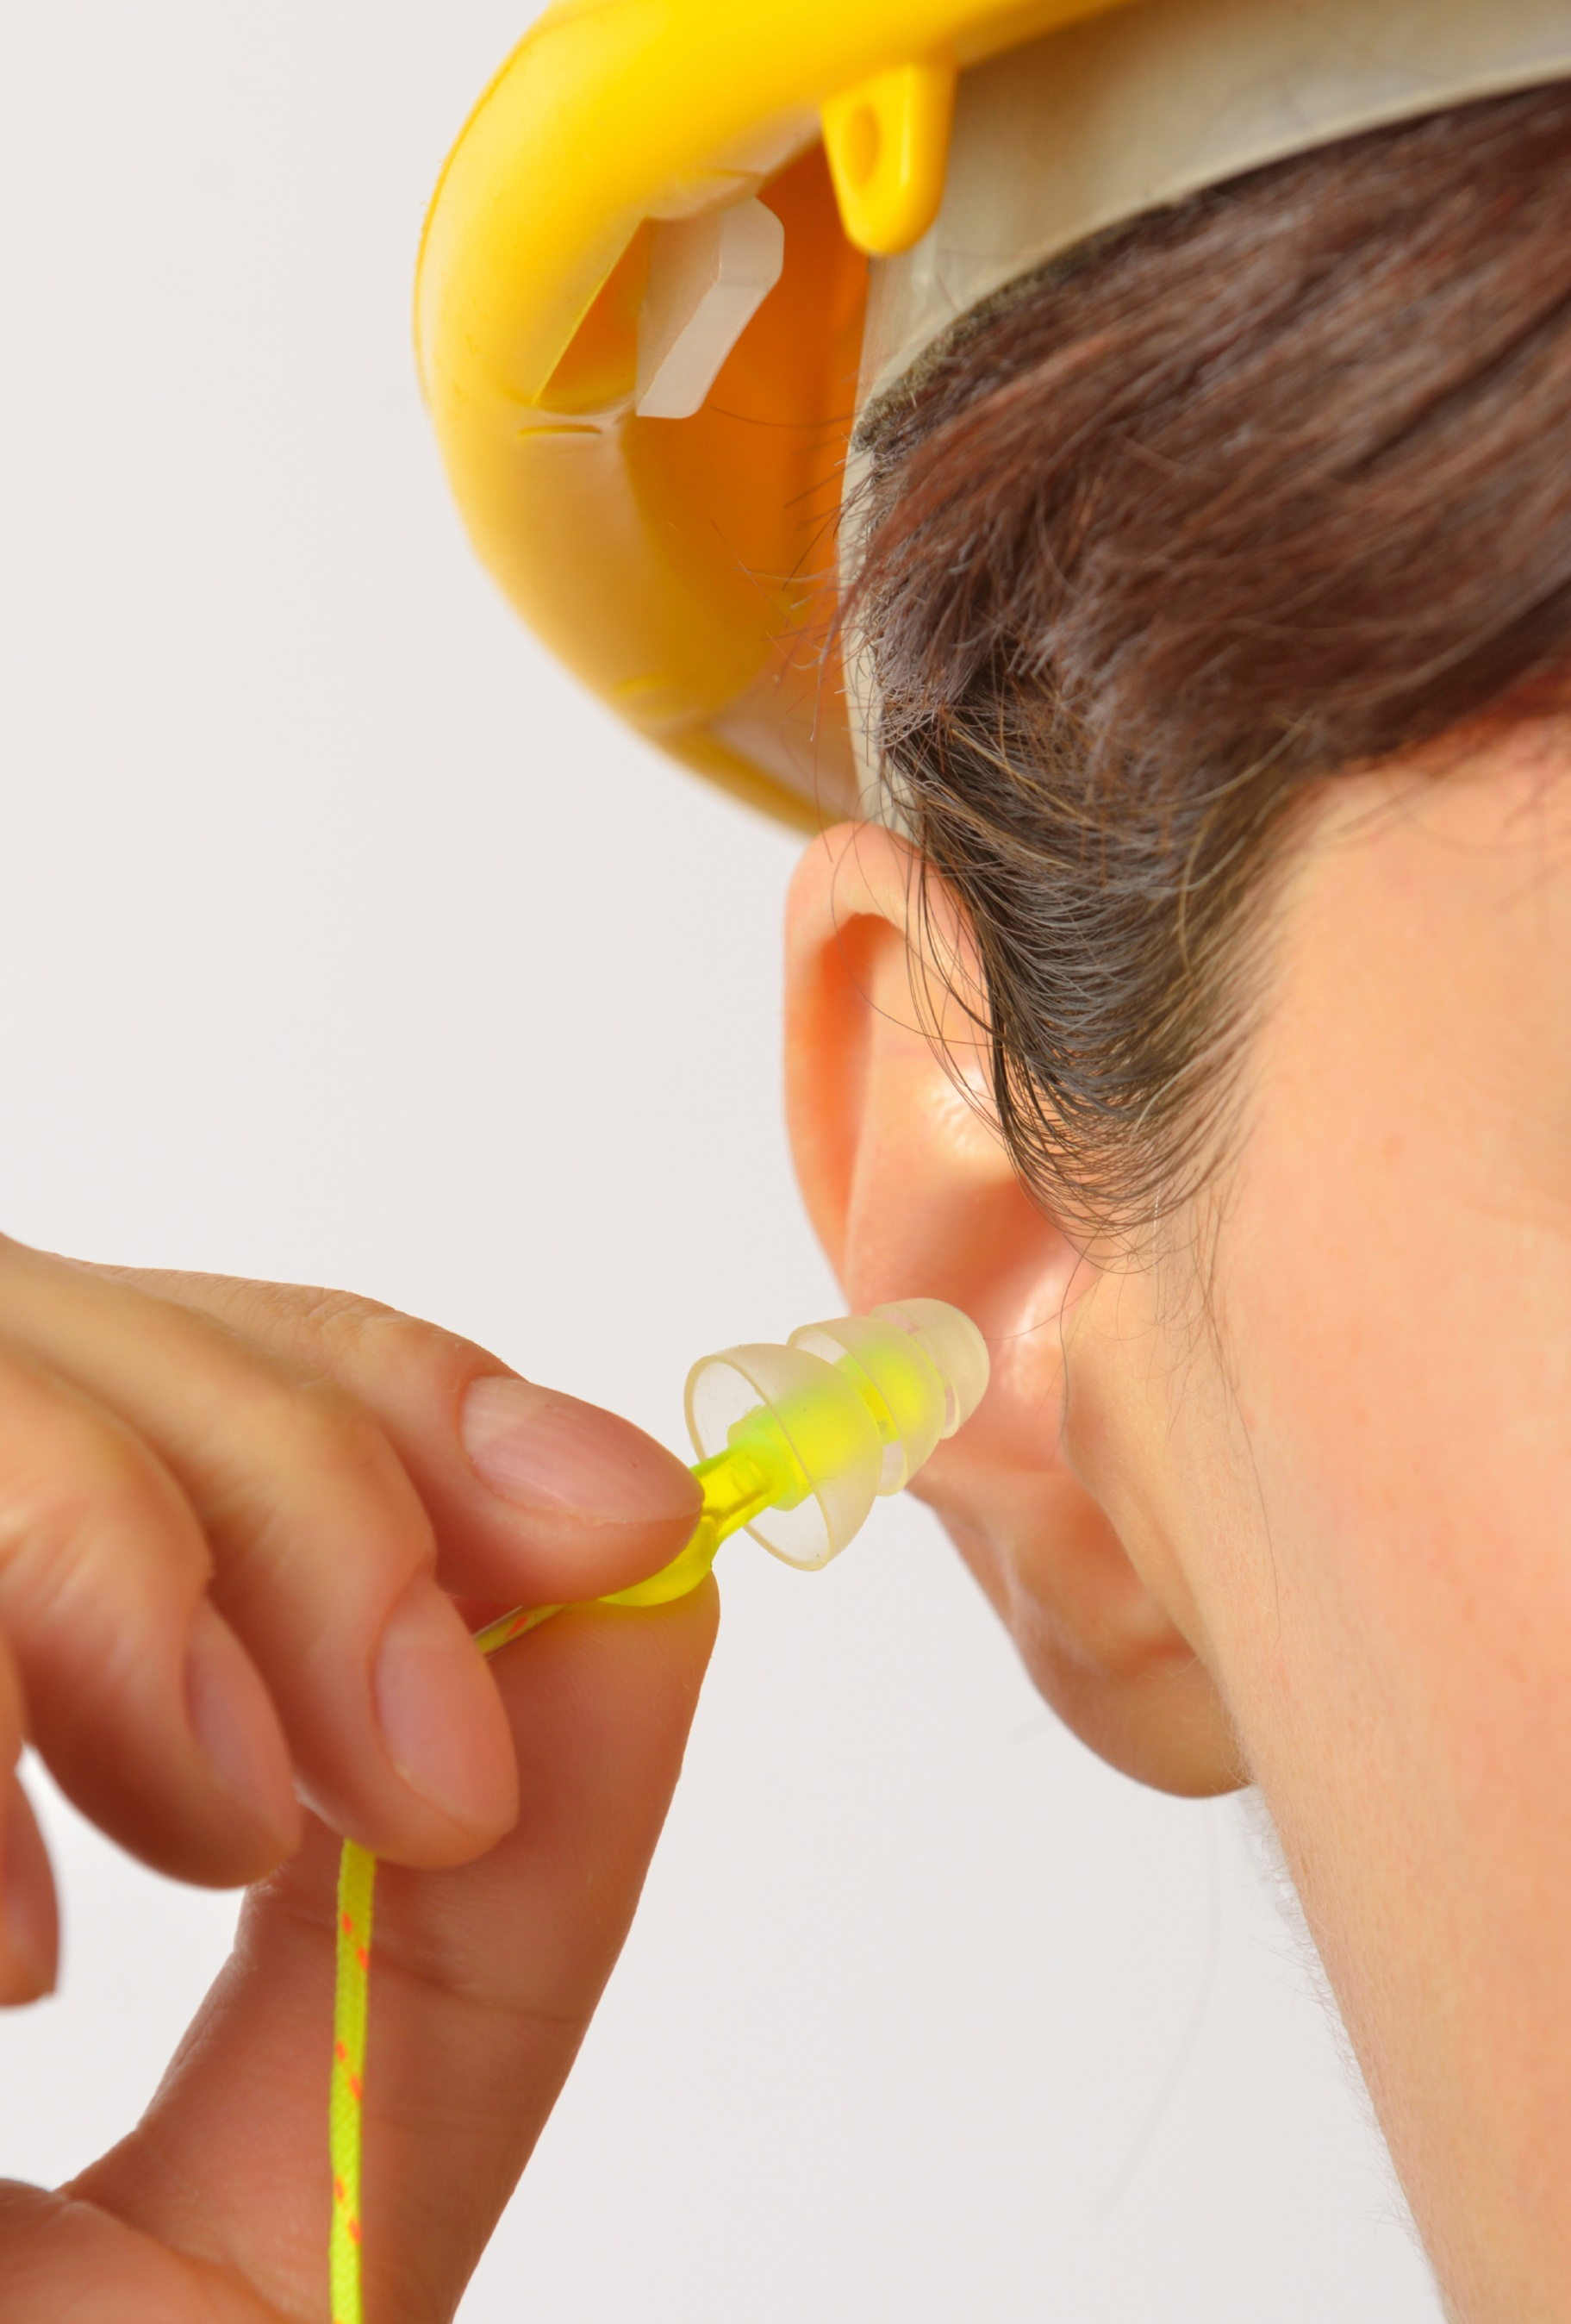 ORR Safety Hearing Protection and Personal Protective Equipment Products